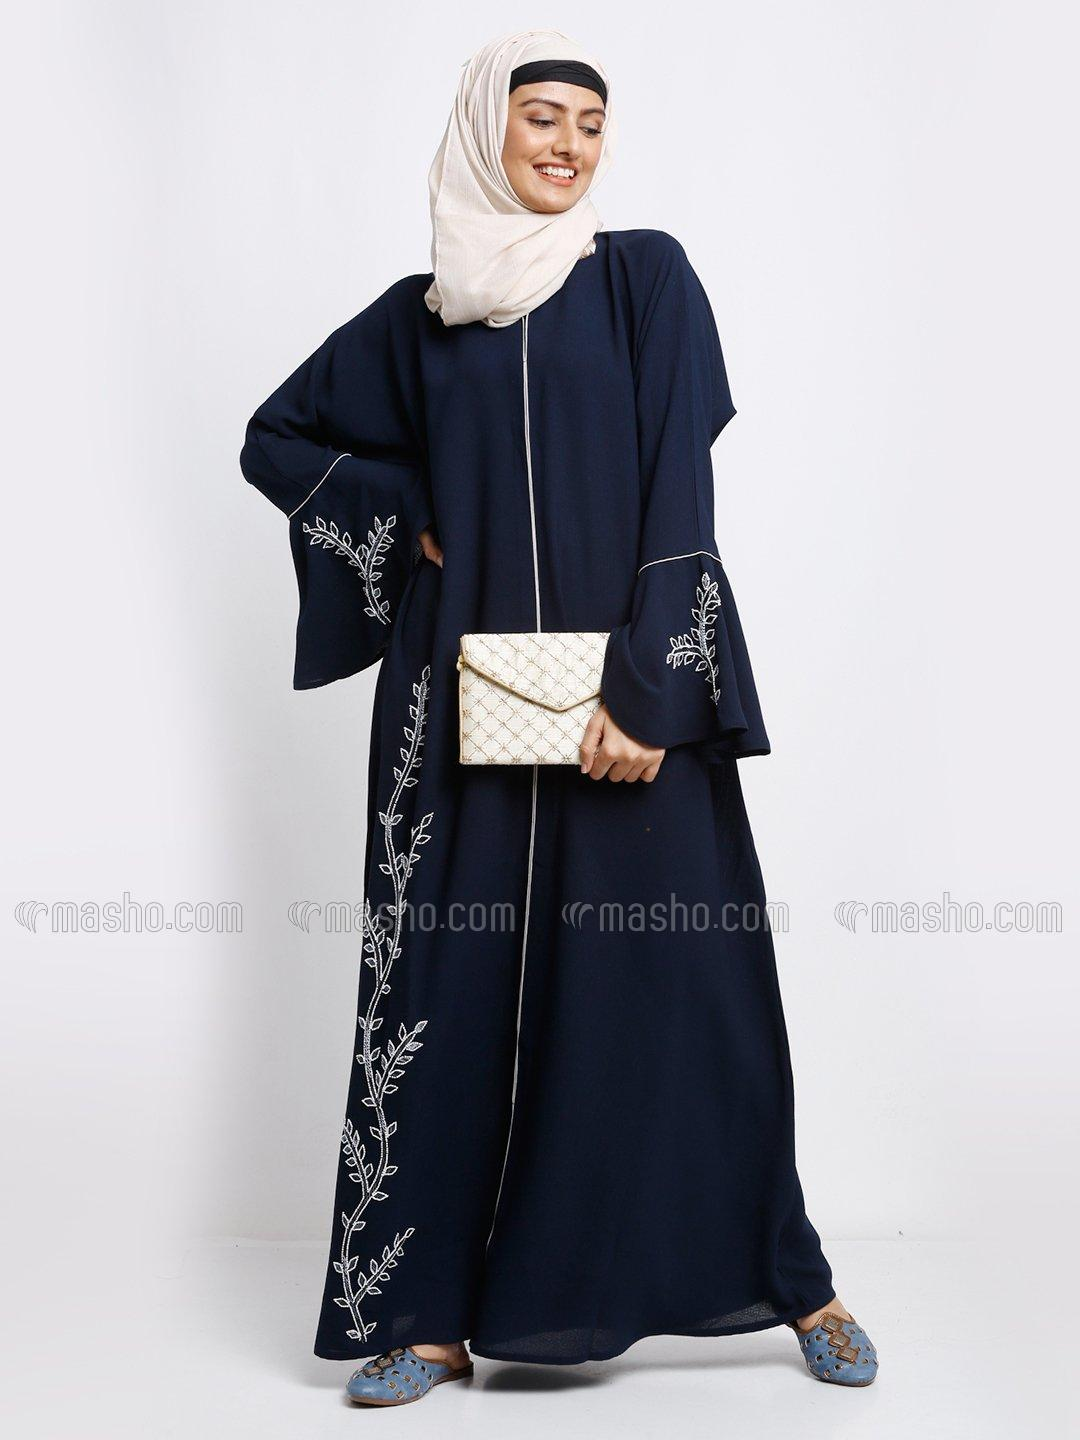 Korean Masha Crepe Simple Free Size Abaya With Crystal Hand Work And Piping Work In Navy Blue